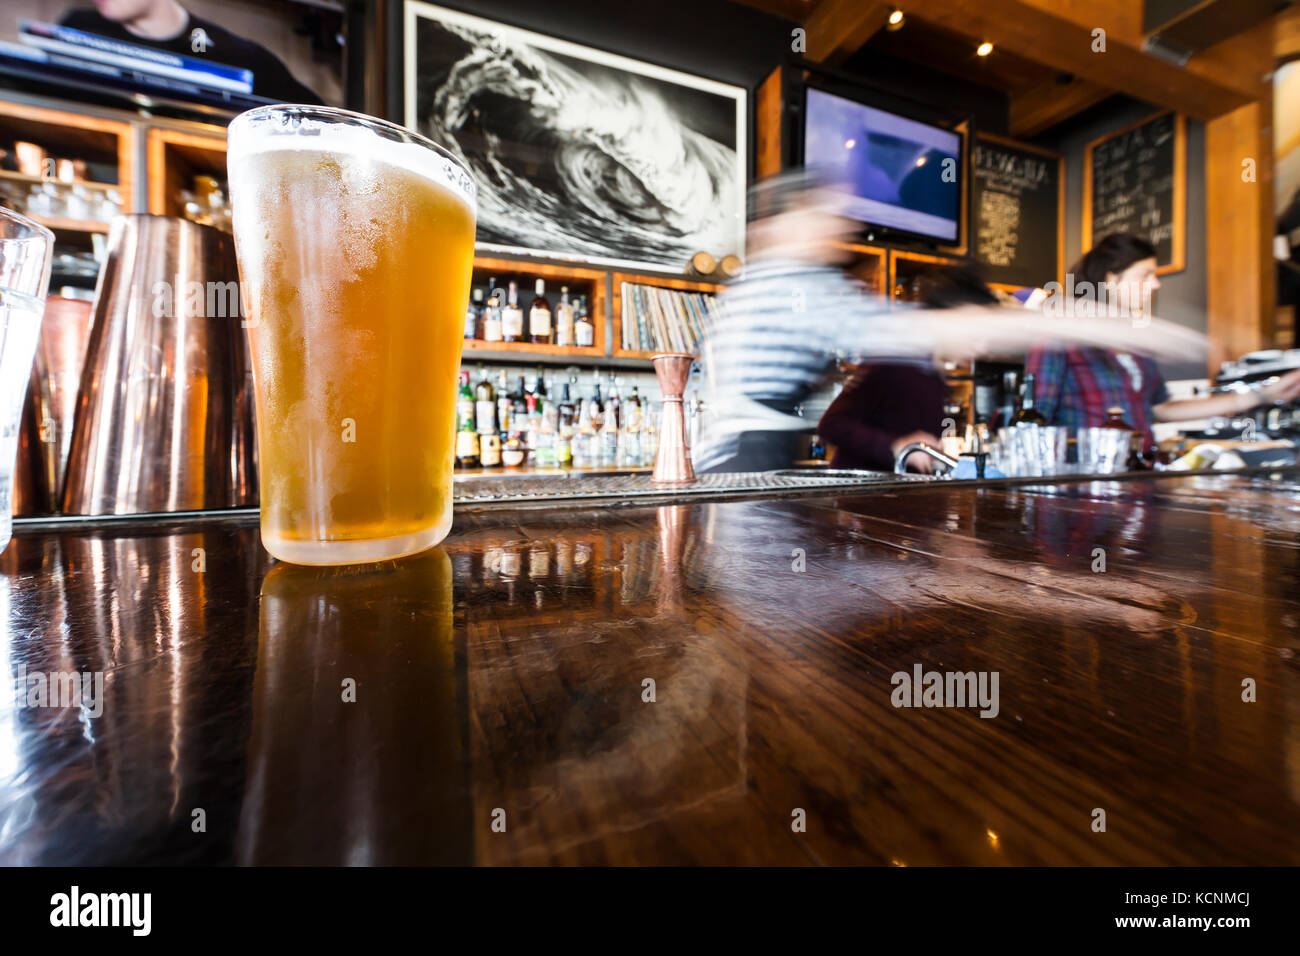 Craft beer is served cold at a local restaurant in Tofino, Pacific Rim, Vancouver Island, British Columbia, Canada. - Stock Image